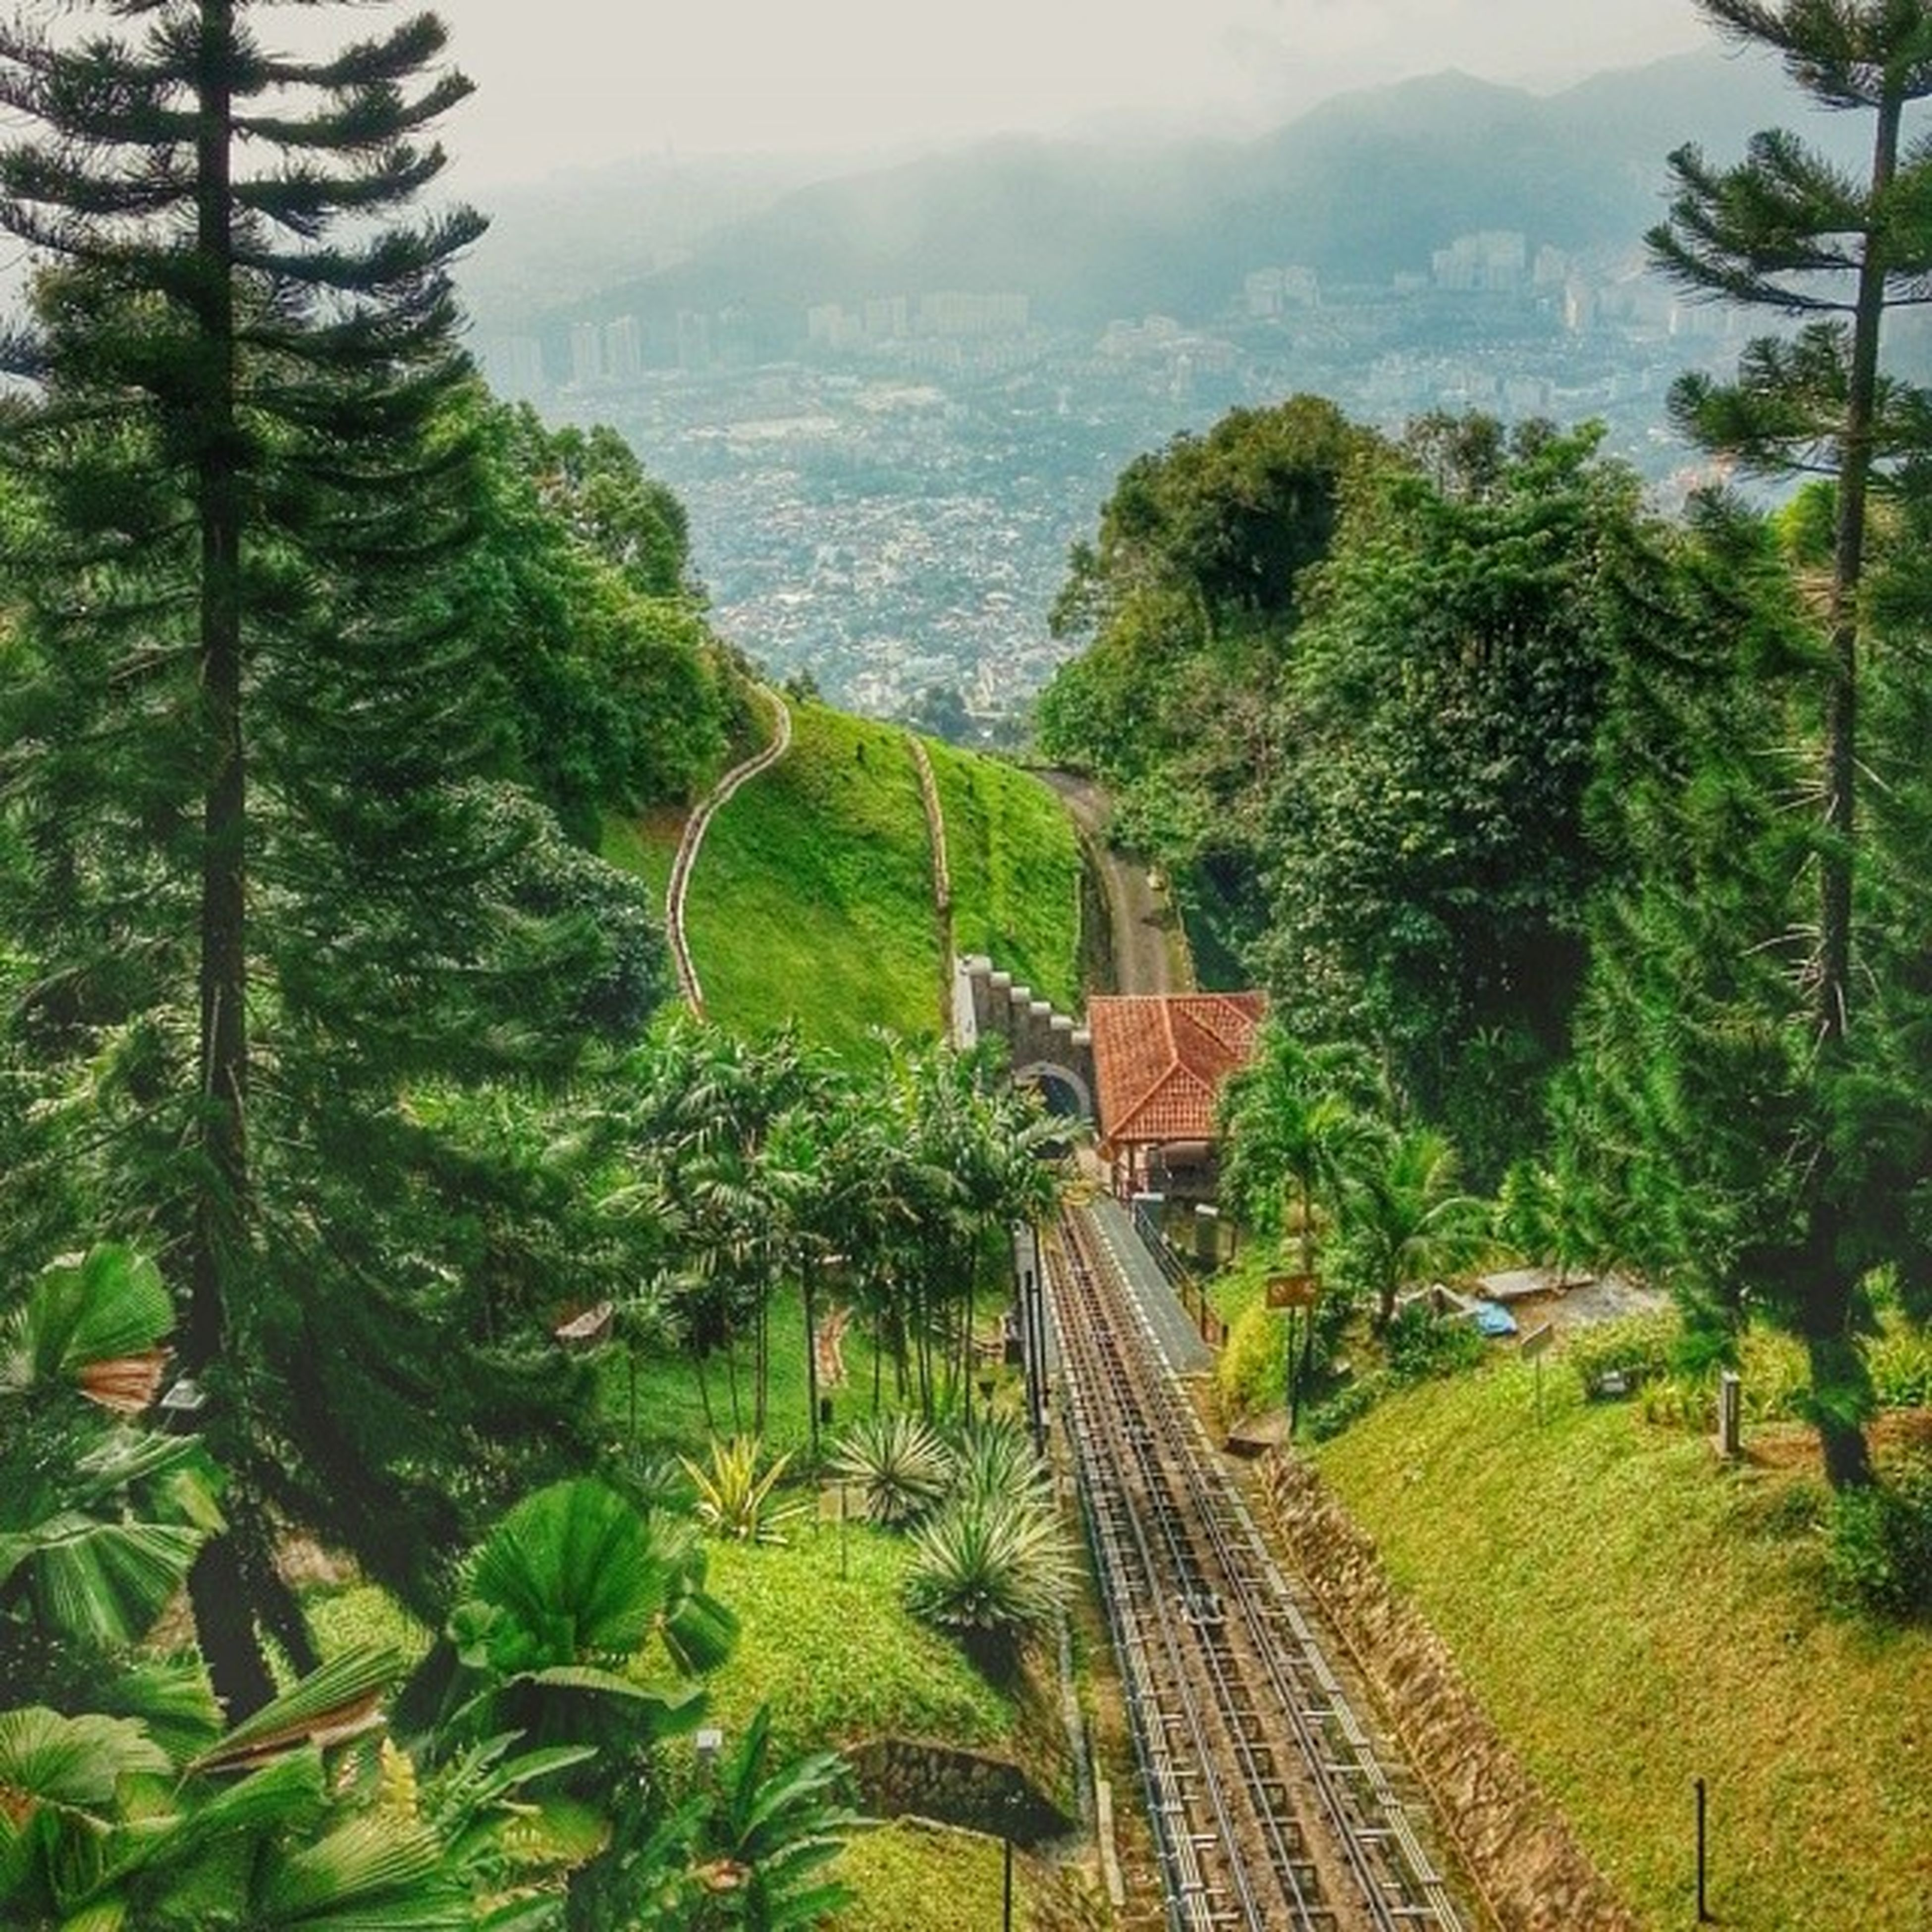 tree, green color, high angle view, growth, mountain, built structure, lush foliage, nature, landscape, tranquility, tranquil scene, transportation, architecture, railroad track, scenics, sky, the way forward, beauty in nature, rail transportation, plant